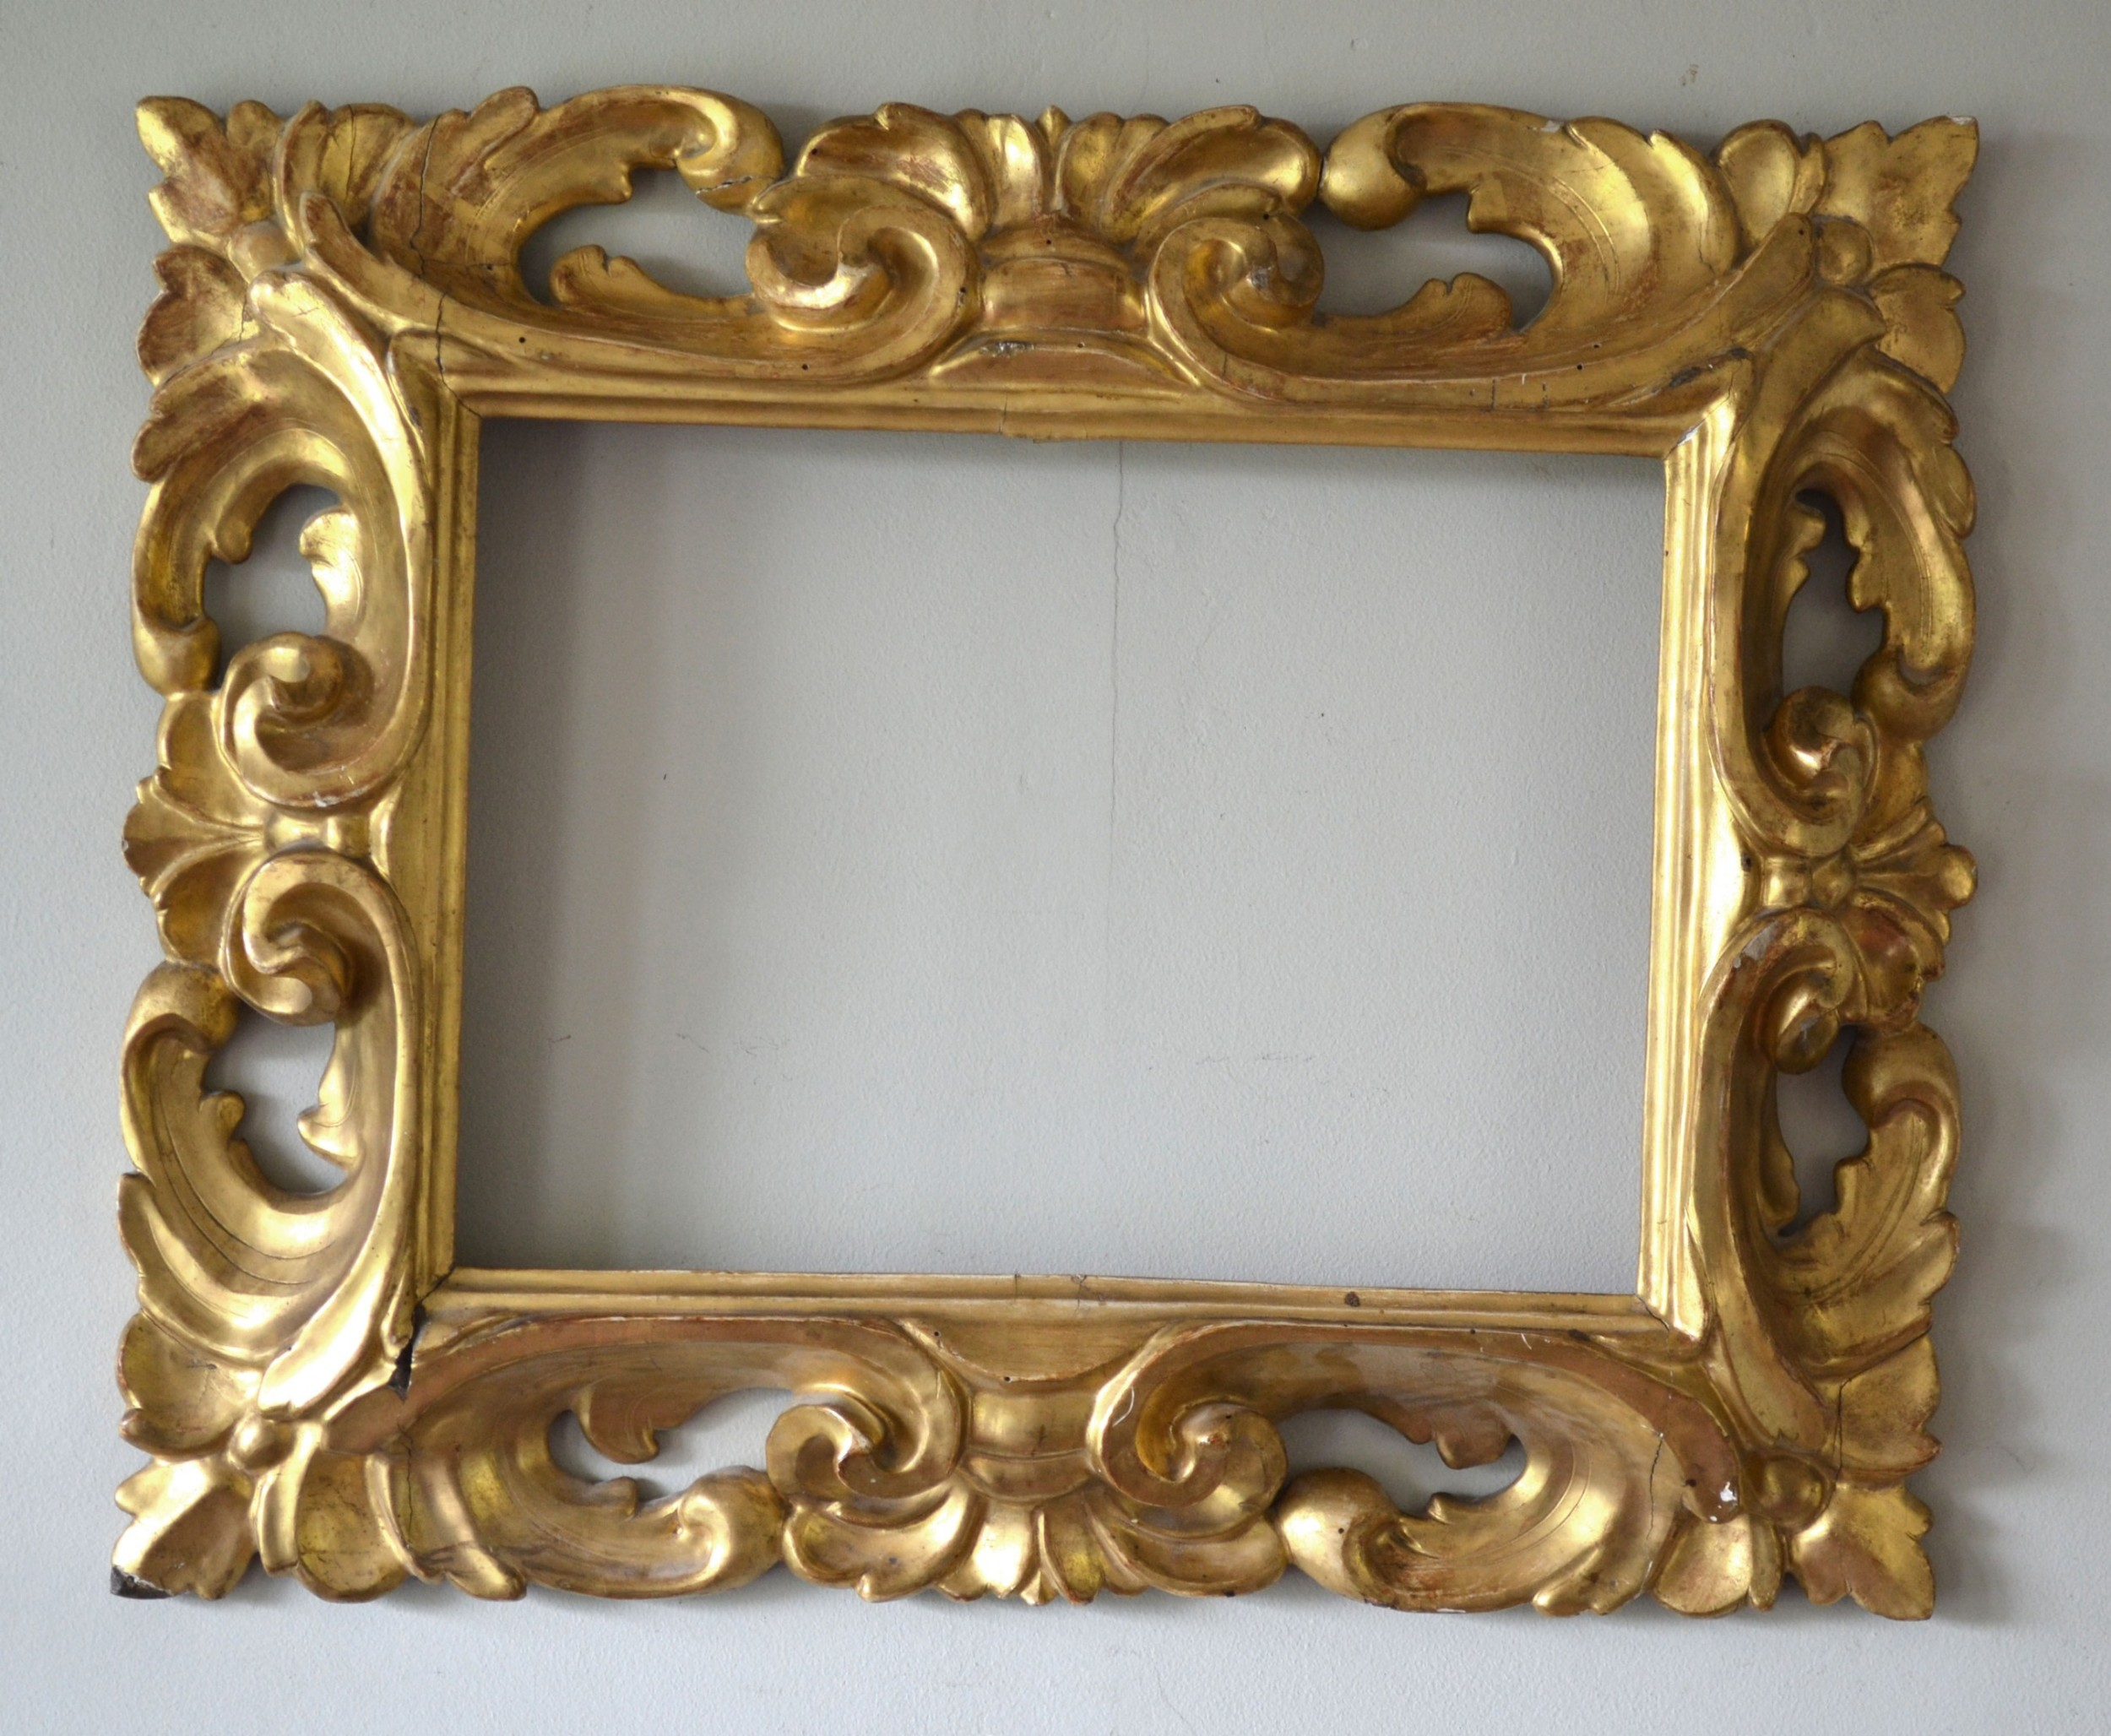 beautiful 19th century carved and gilded florentine frame takes painting 39cm x 285cm 15 14 x 11